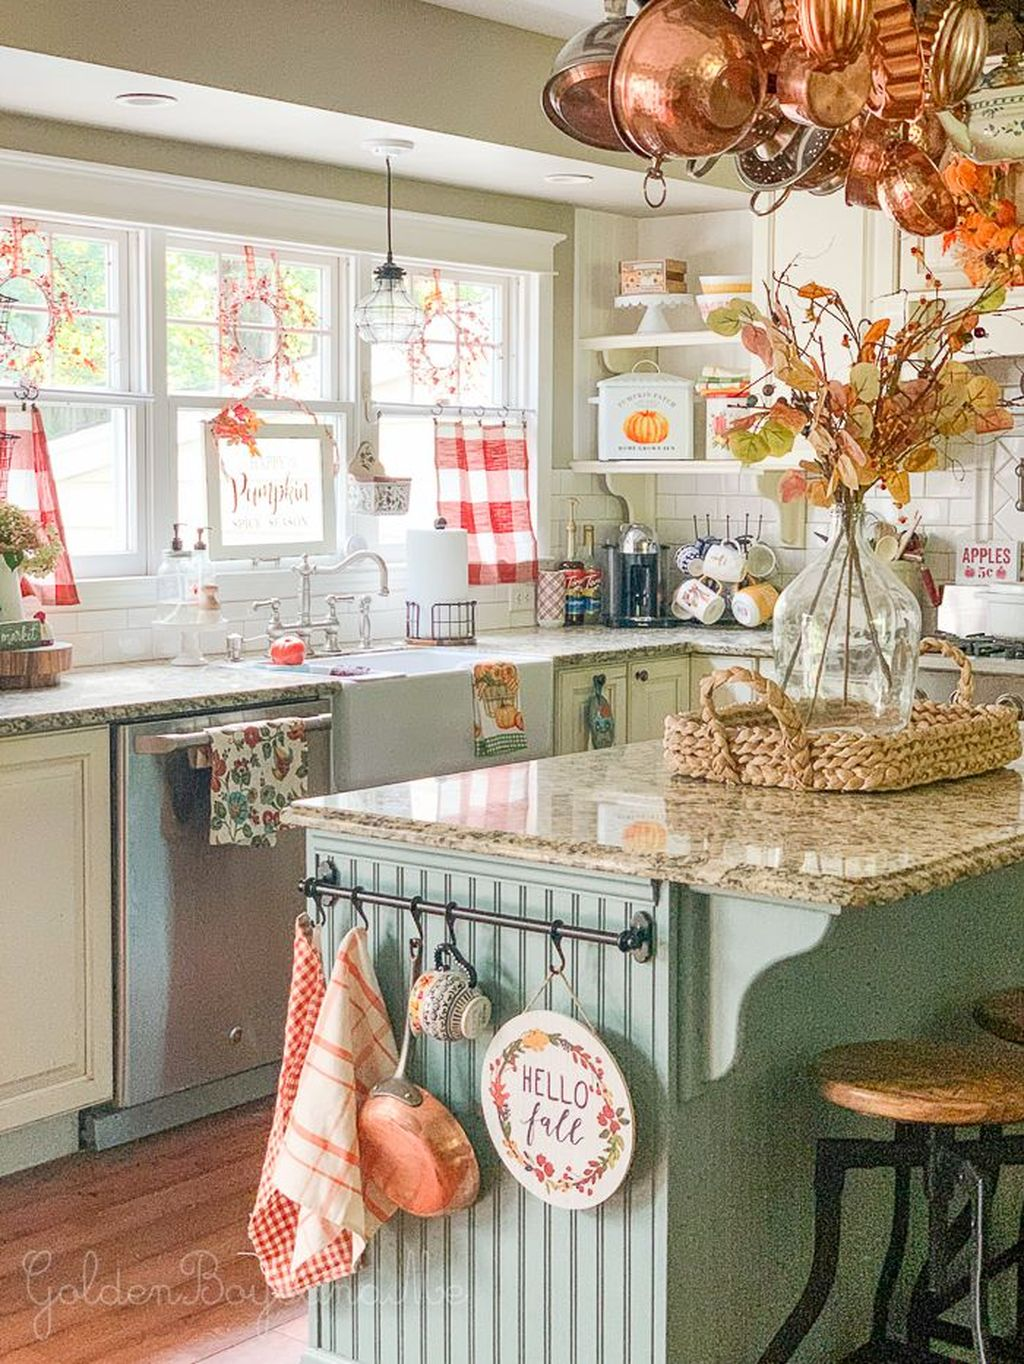 Inspiring Country Kitchen Decor Ideas You Should Copy 26